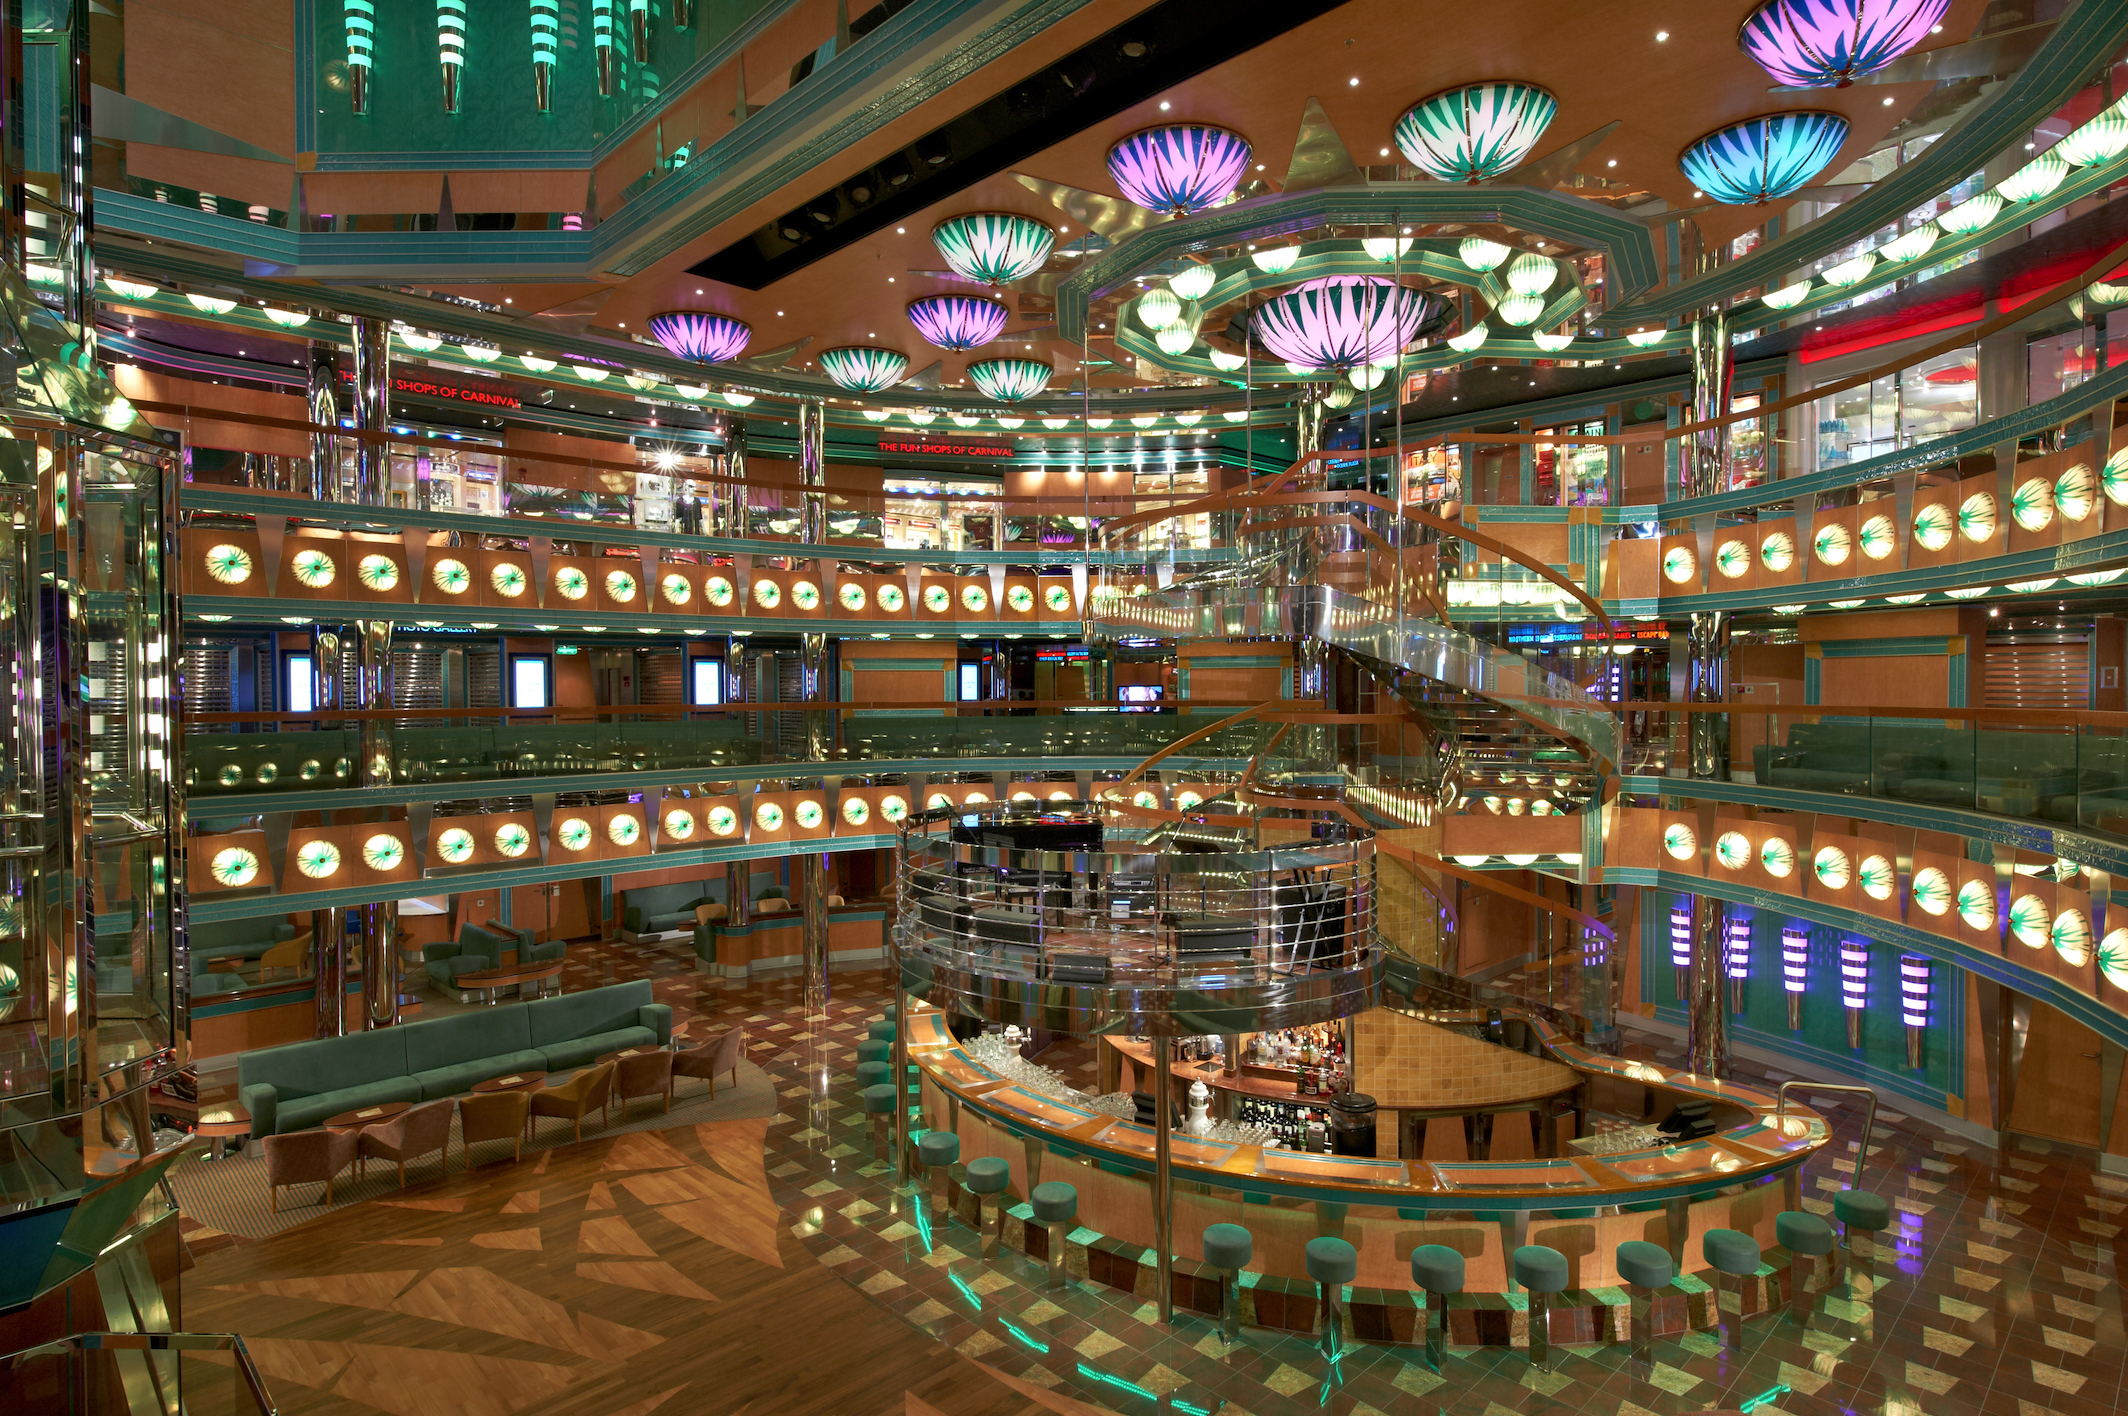 Carnival Magic Atrium 1.jpg